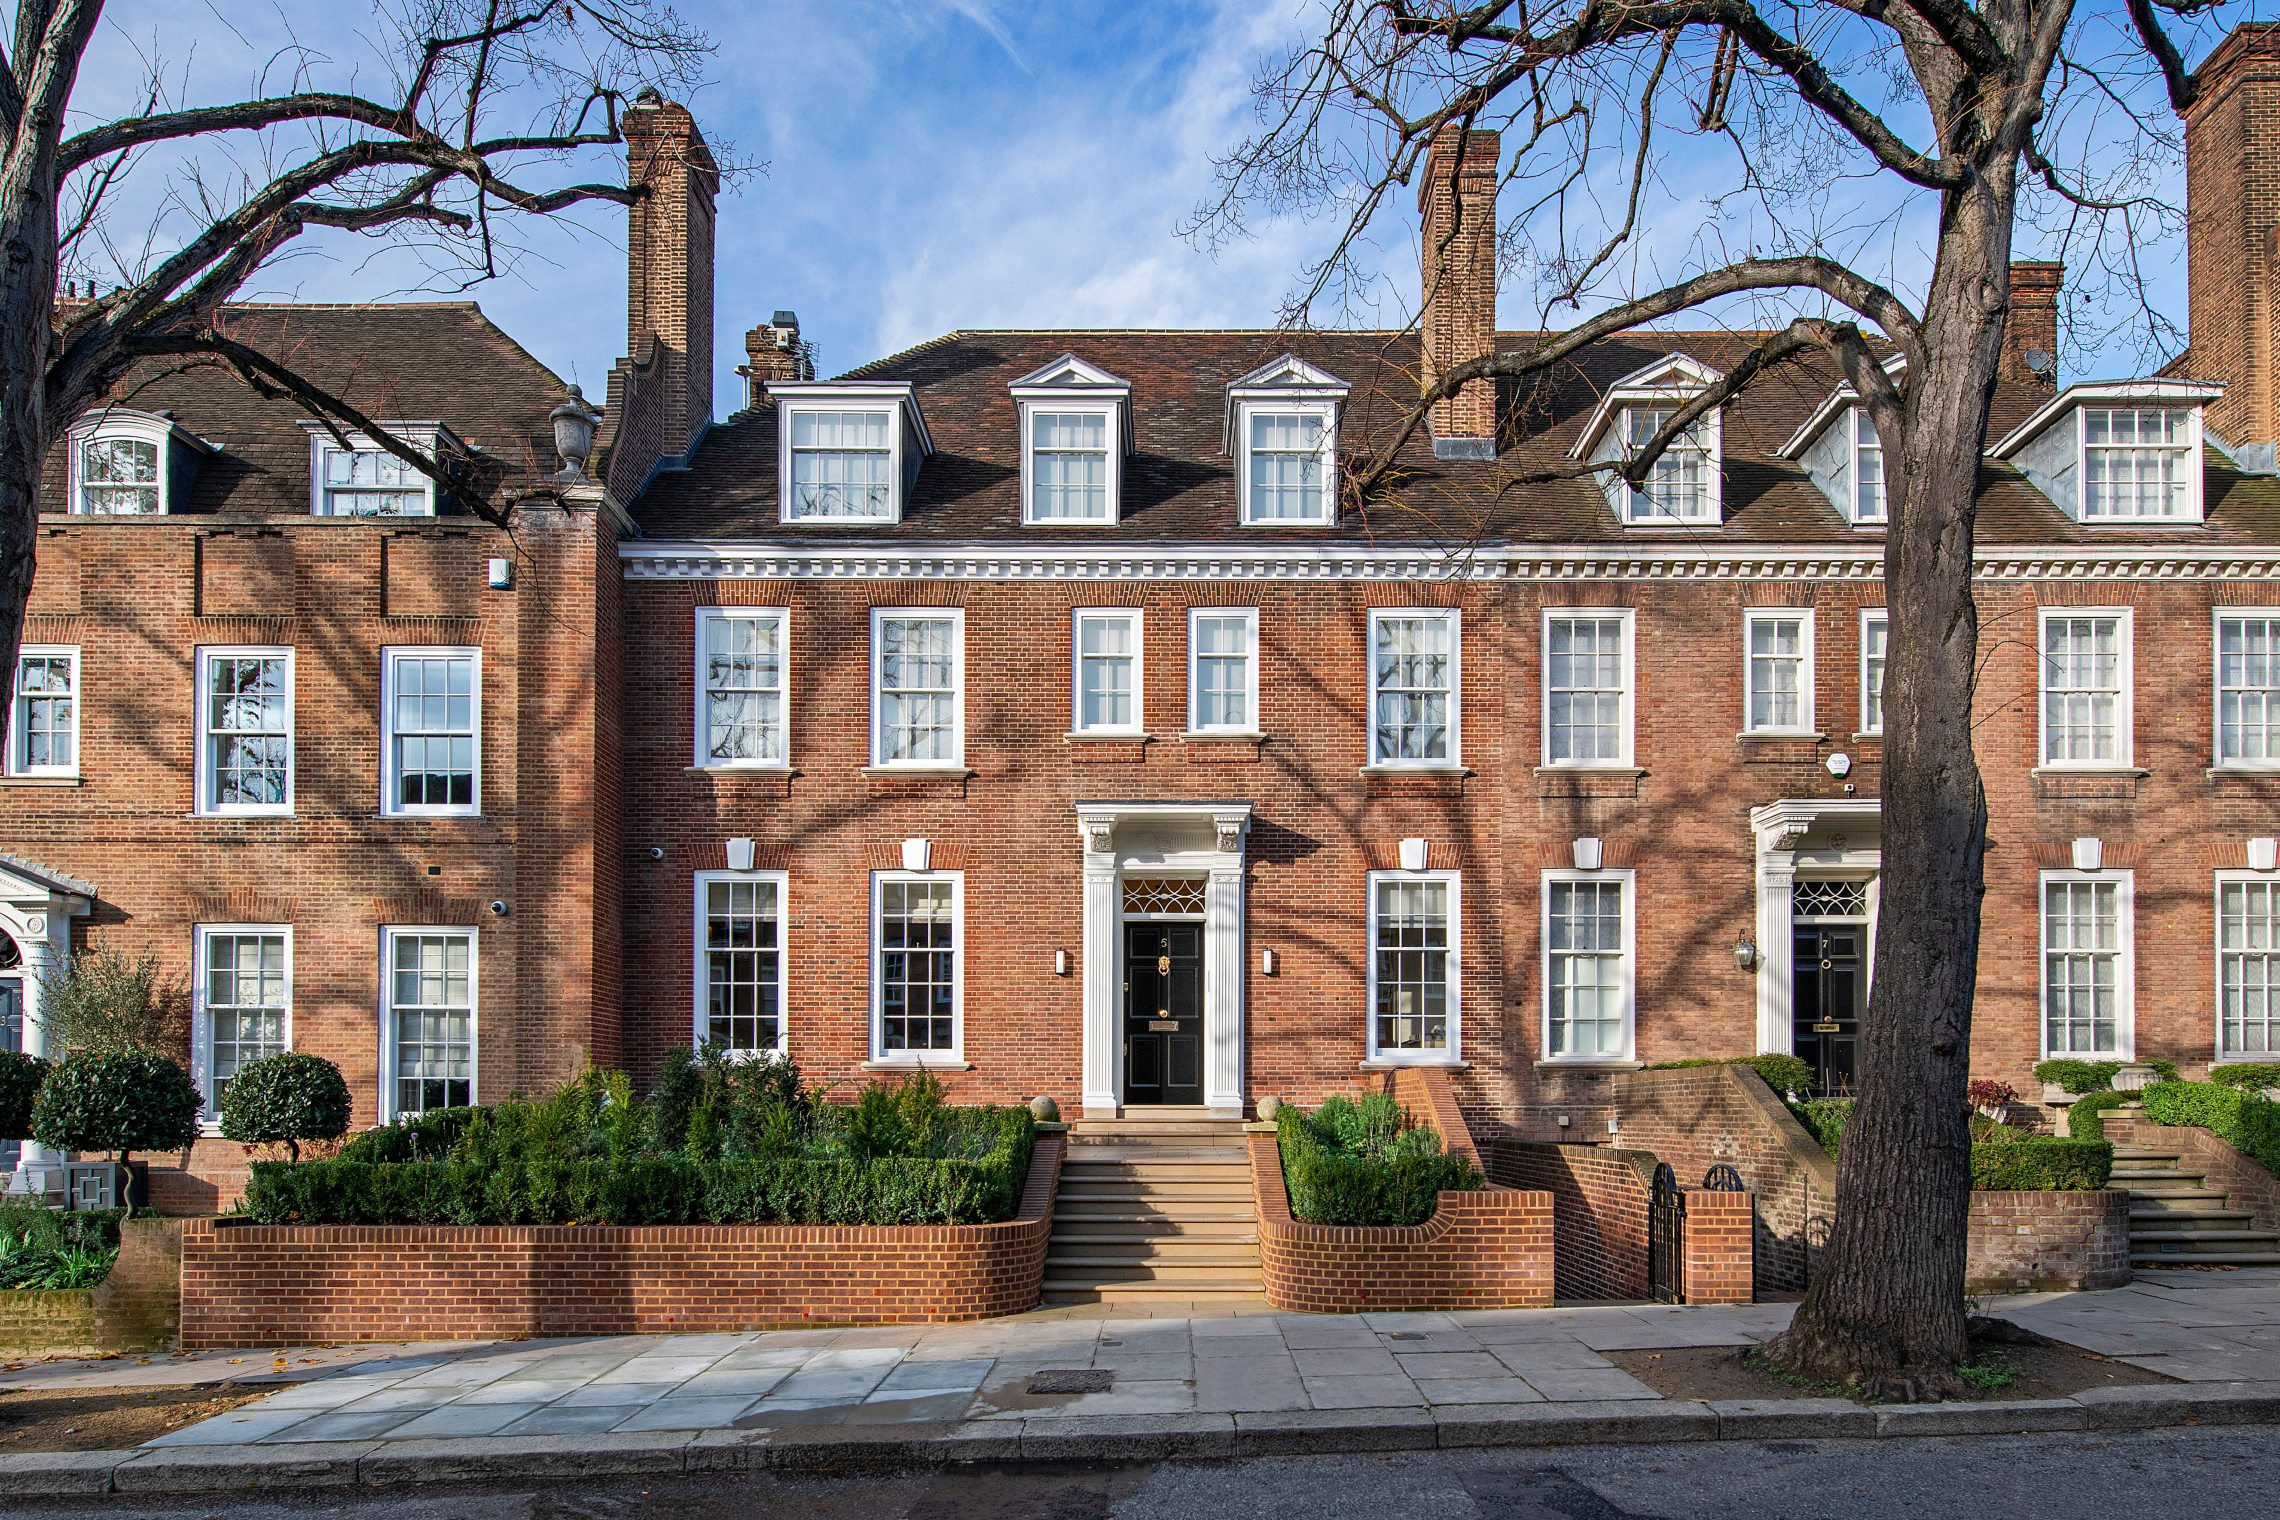 The exterior of a London house on Ilchester Place